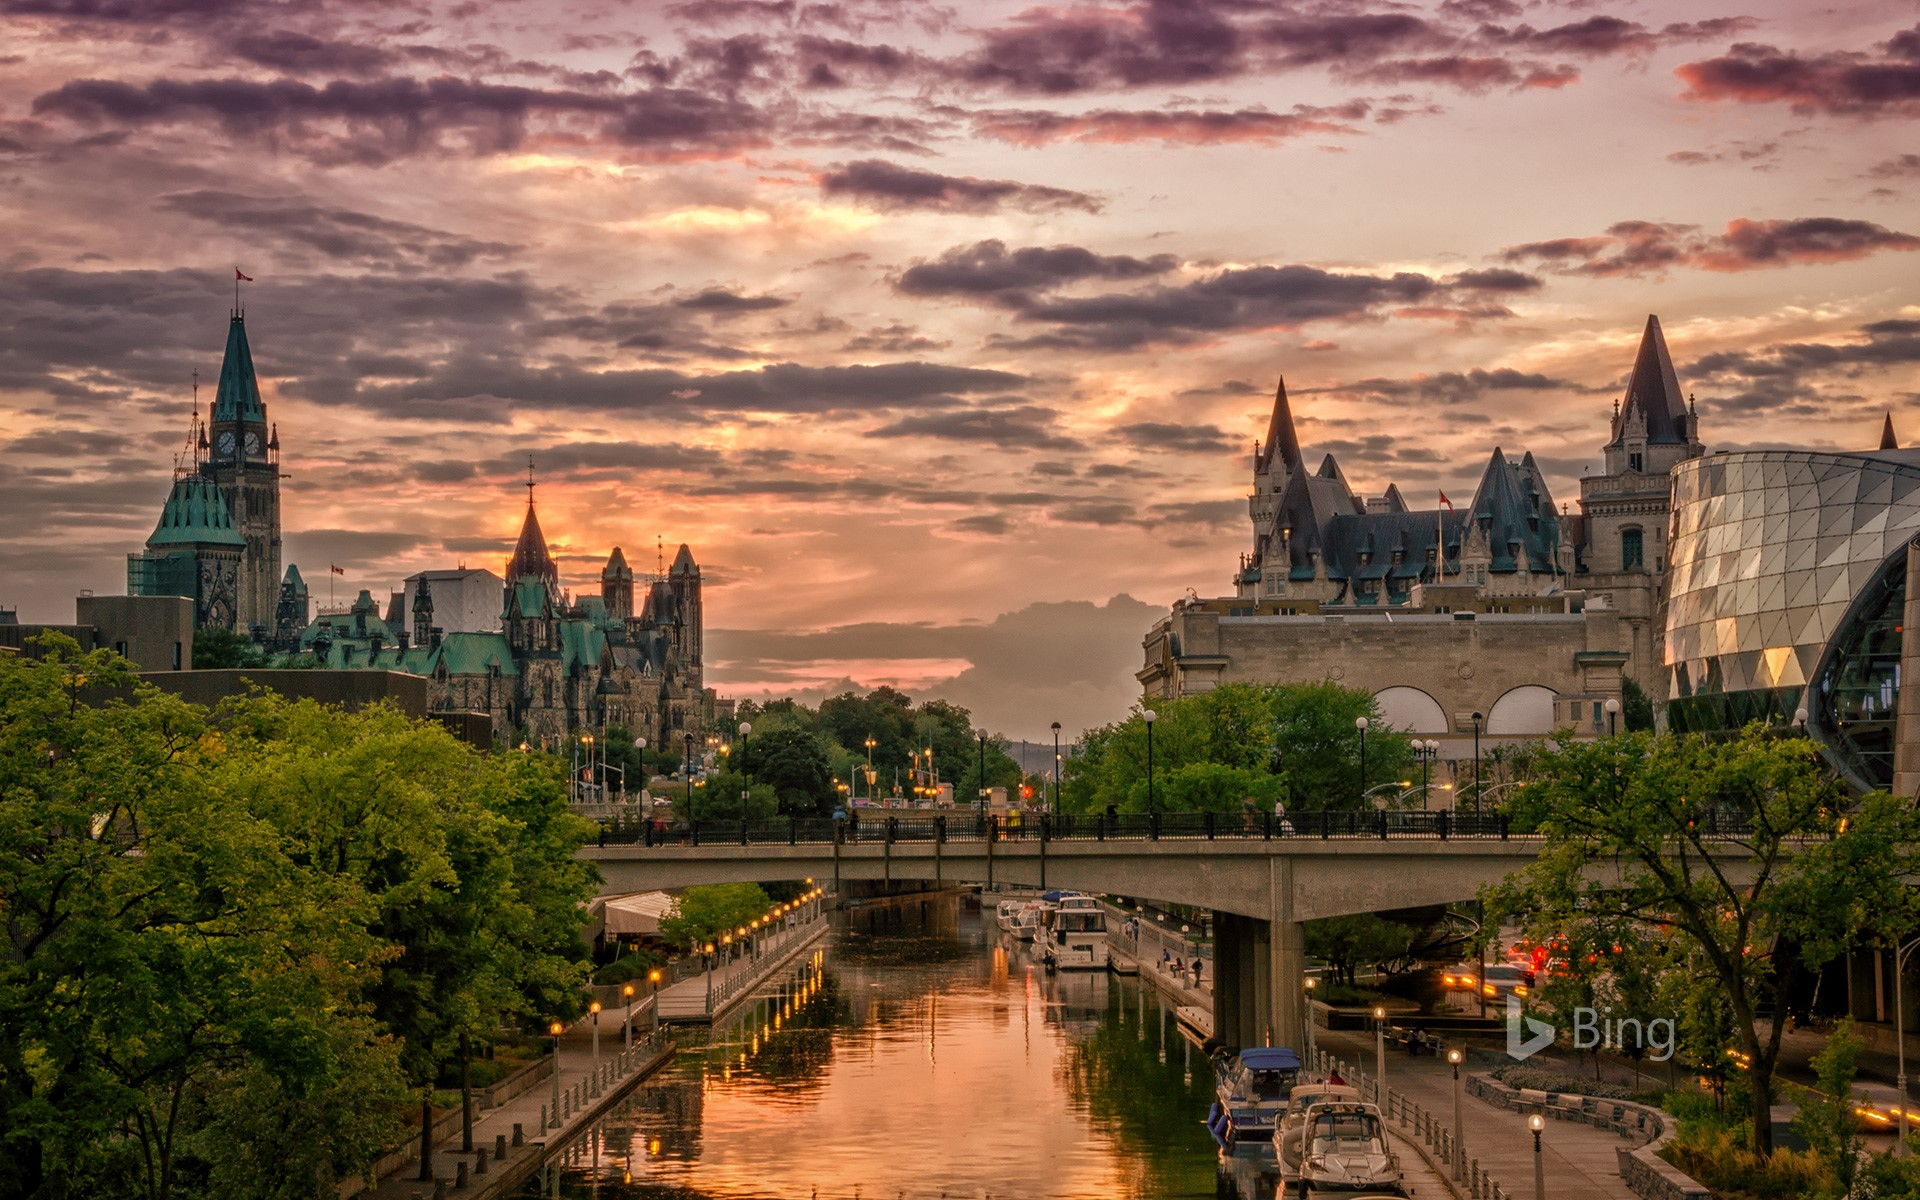 Rideau Canal at sunset with Chateau Laurier in the background, Ottawa, Canada